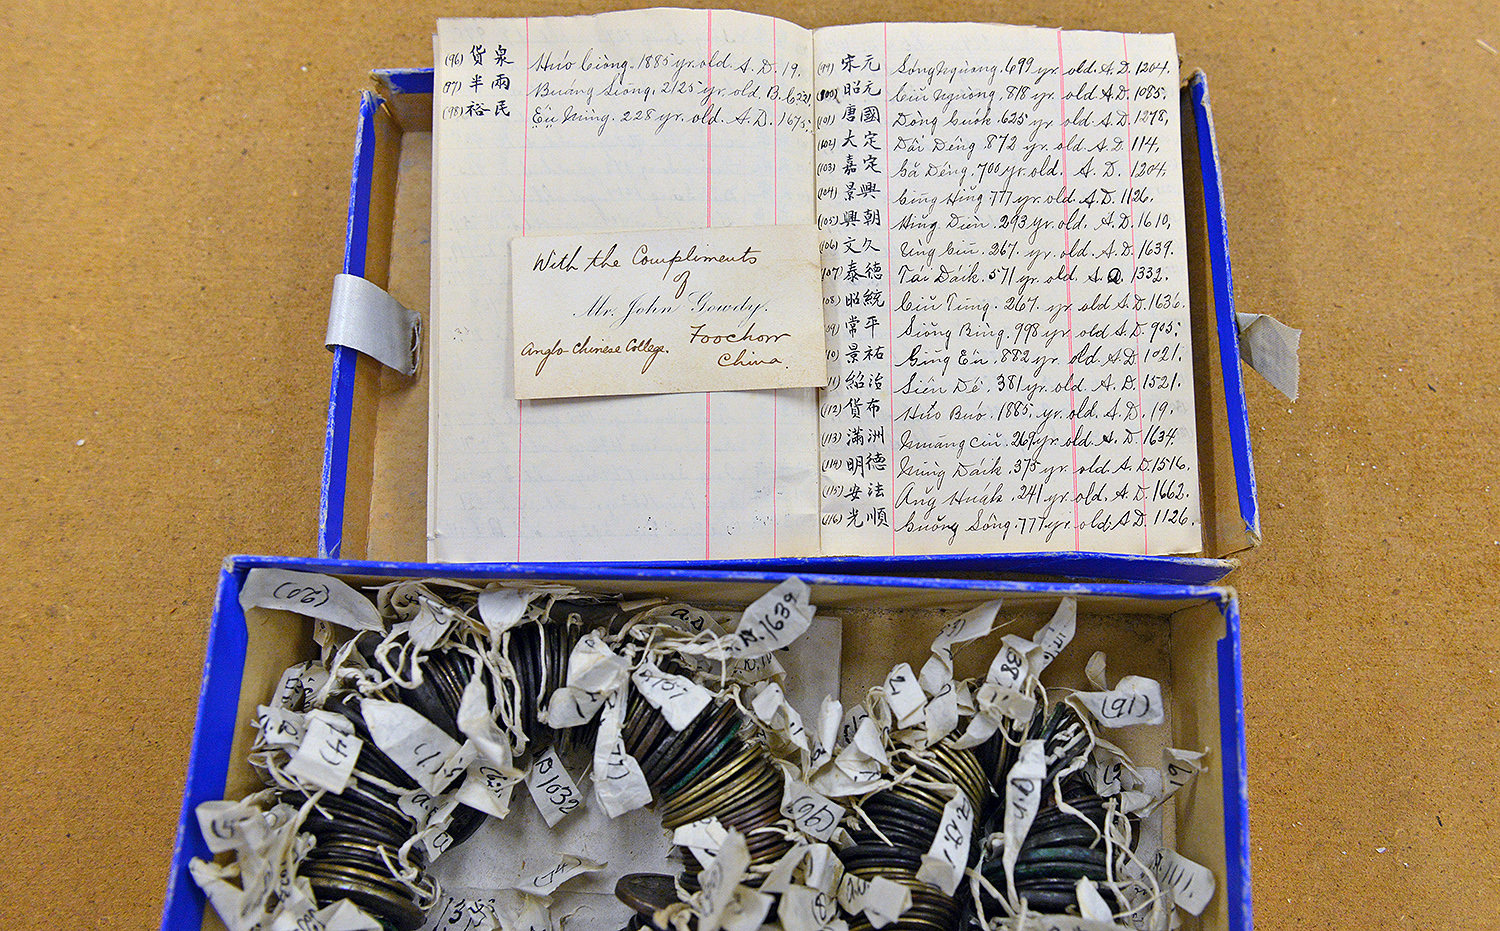 While rummaging through drawers in Exley's Specimen Storage room, Ellen Thomas discovered large collections of old coins including miniature intaglios and ancient Chinese coins collected by the Methodist missionaries who started Wesleyan. The coins are documented in an accompanying booklet.